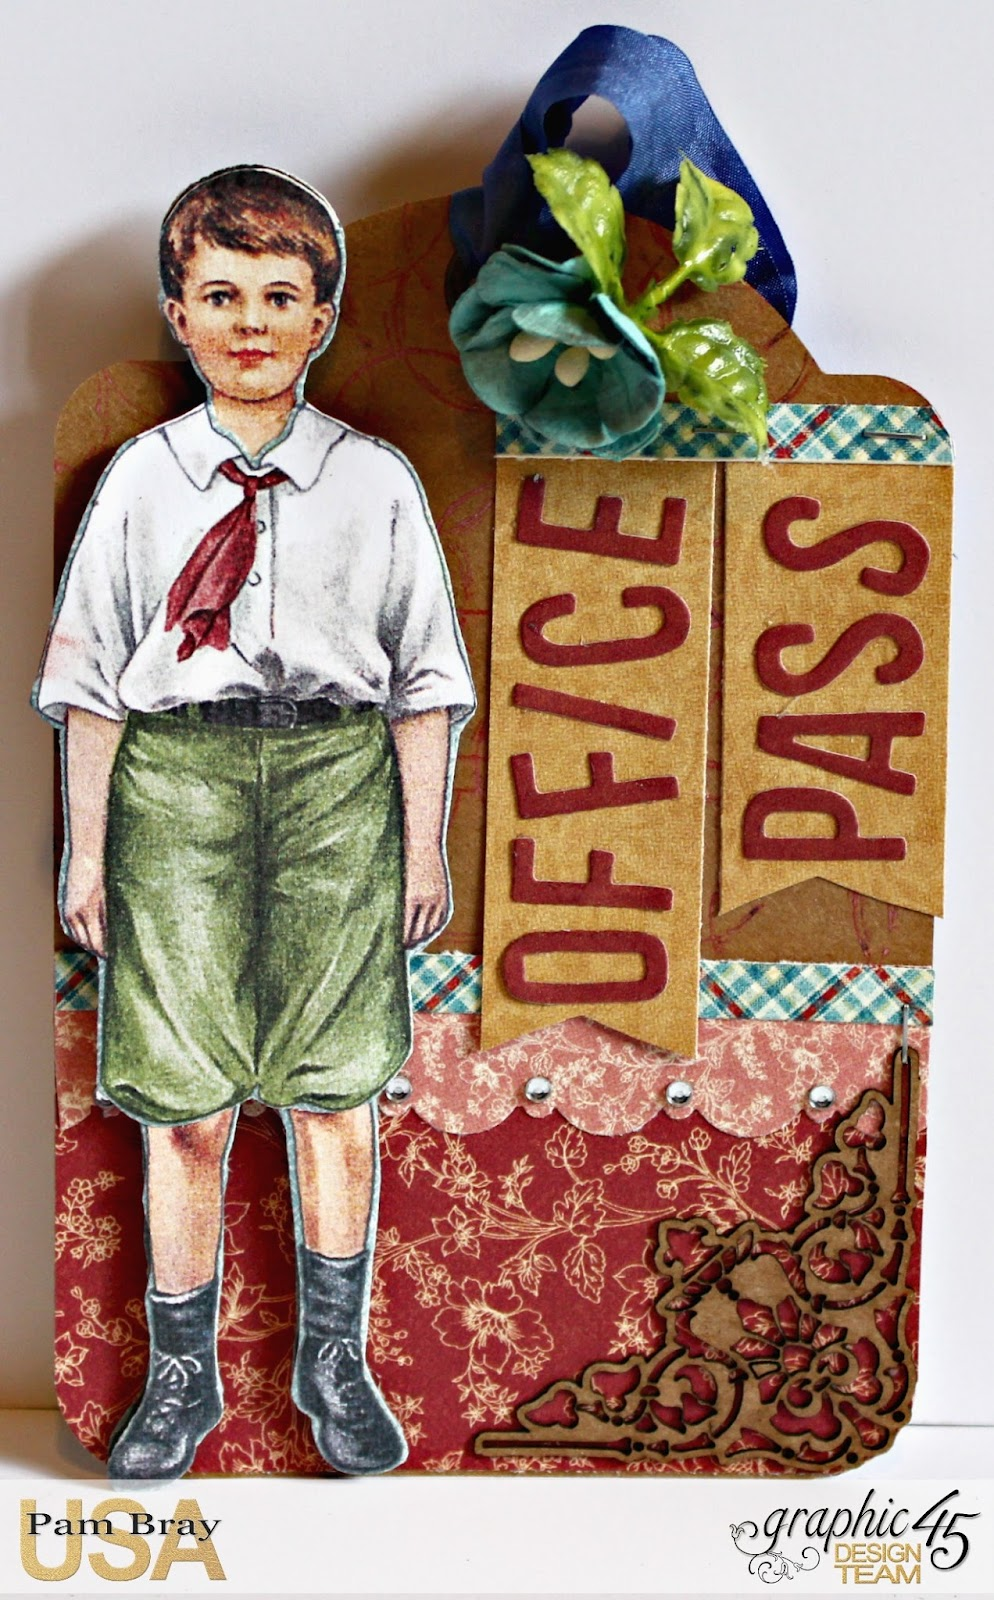 2017 G45 Brand Ambassadors- 2017 Pam Bray  - June 2017 - Penny's Paper Dolls Desk Organizer  with Tutorial Photo 11_7256.jpg